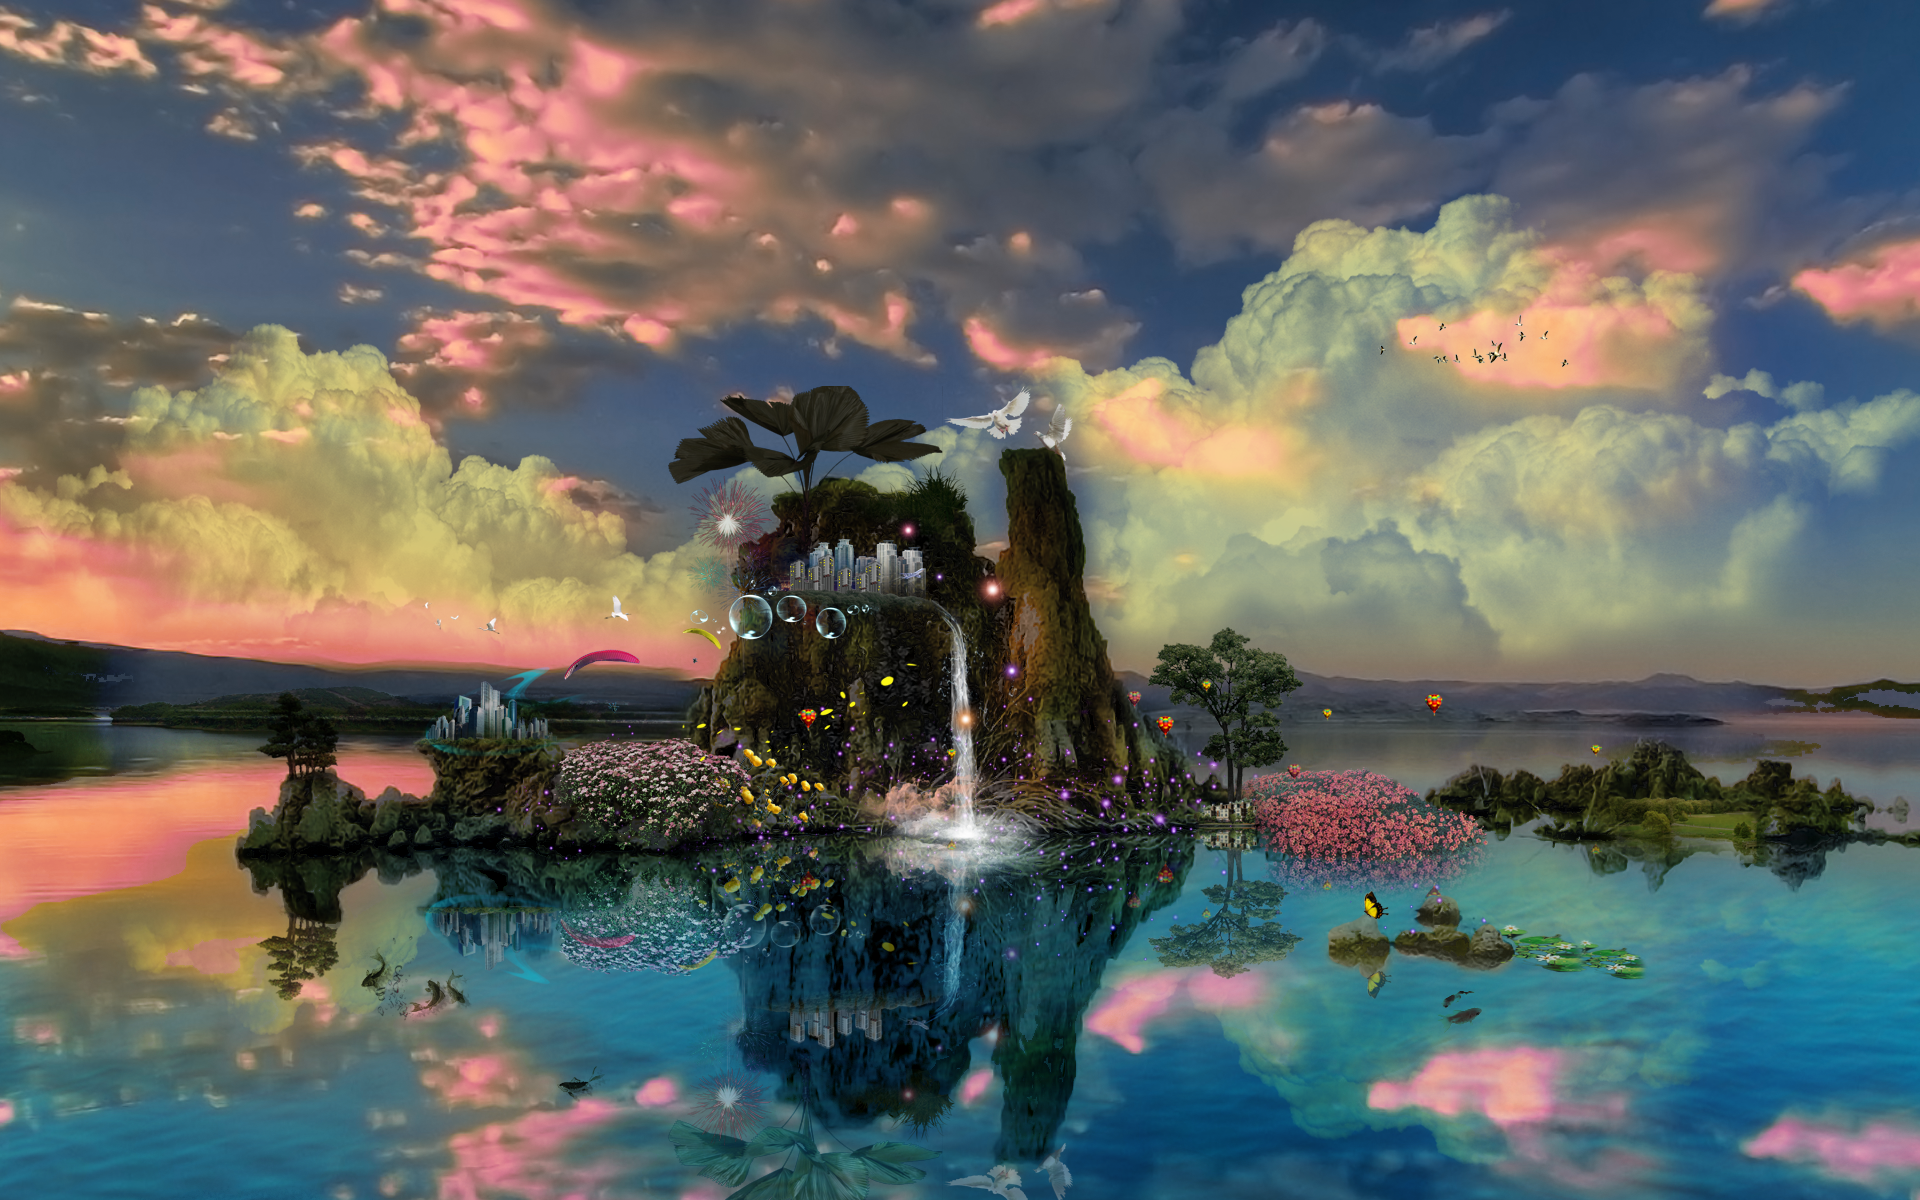 imaginary world page | pickoolcoolpiks | pinterest